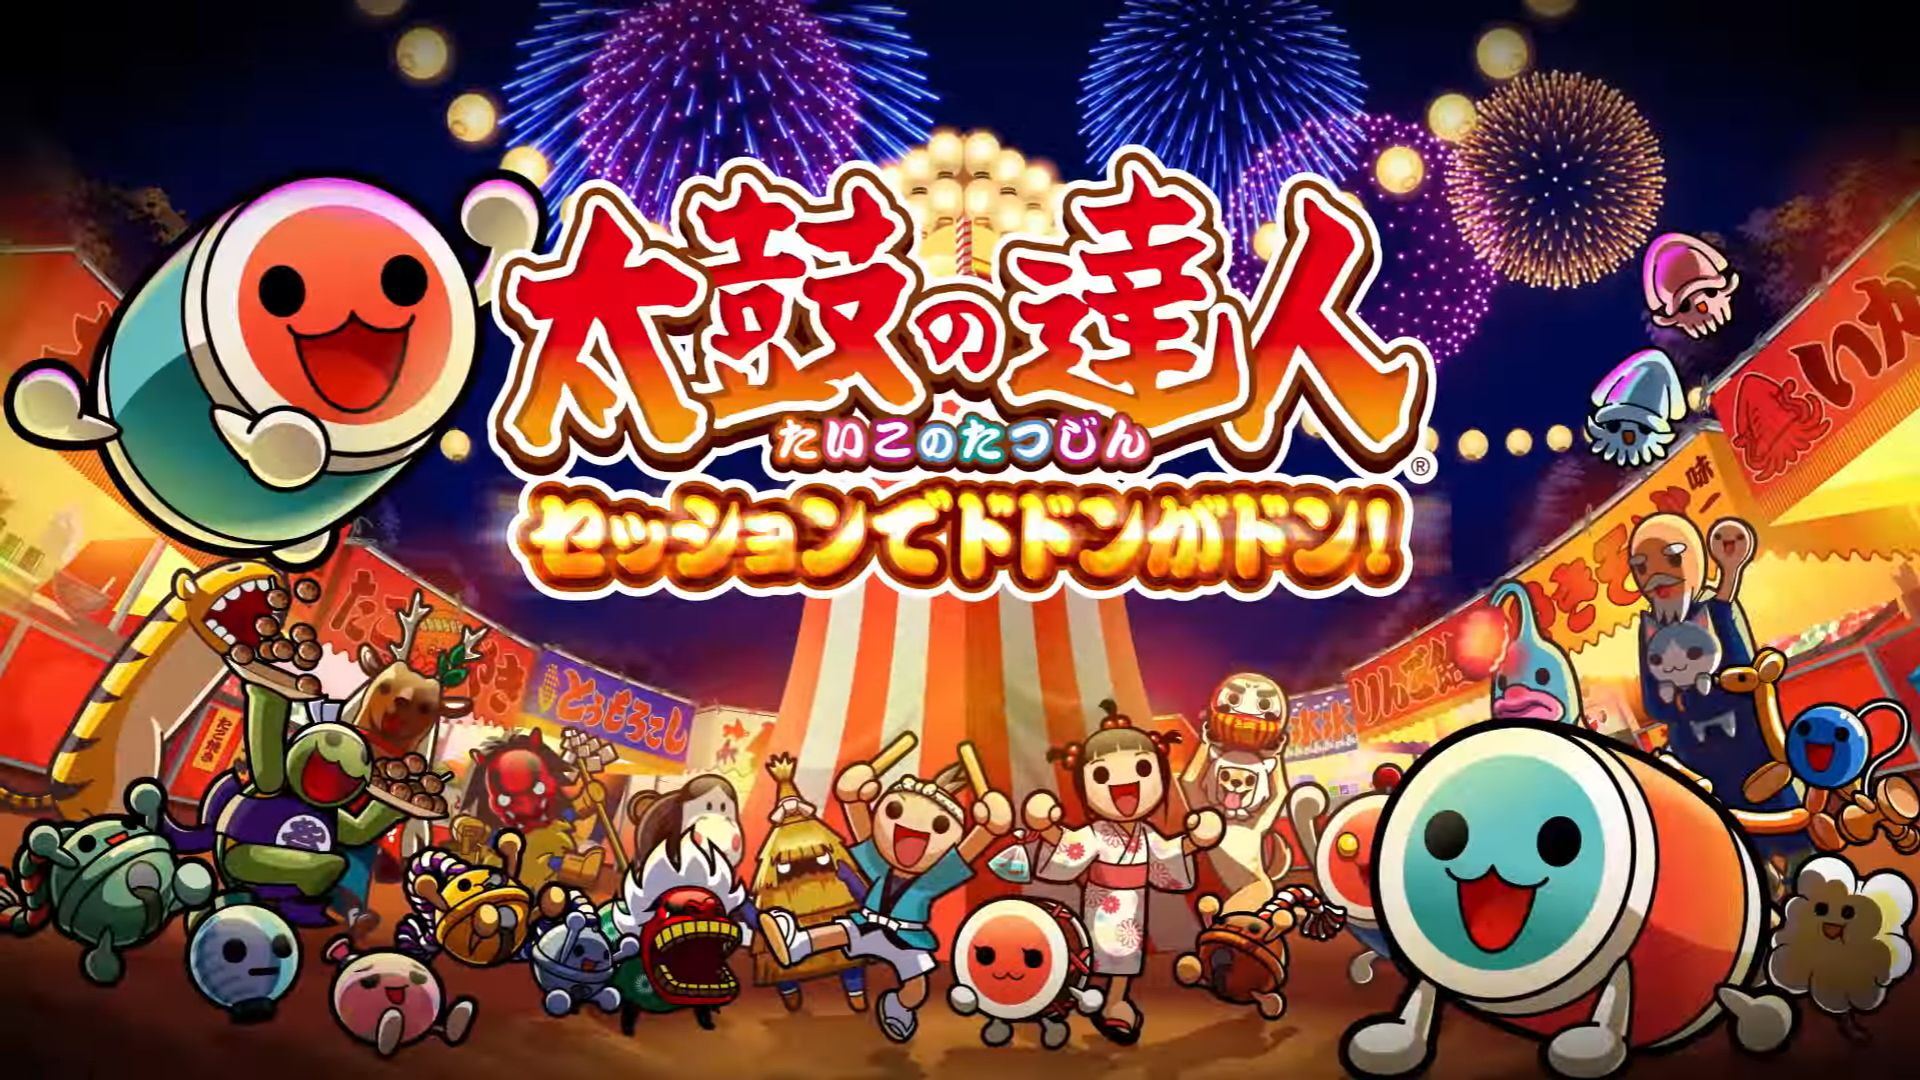 R34 Wallpaper Hd Ps4 Exclusive Taiko Drum Master Drum Session Gets New